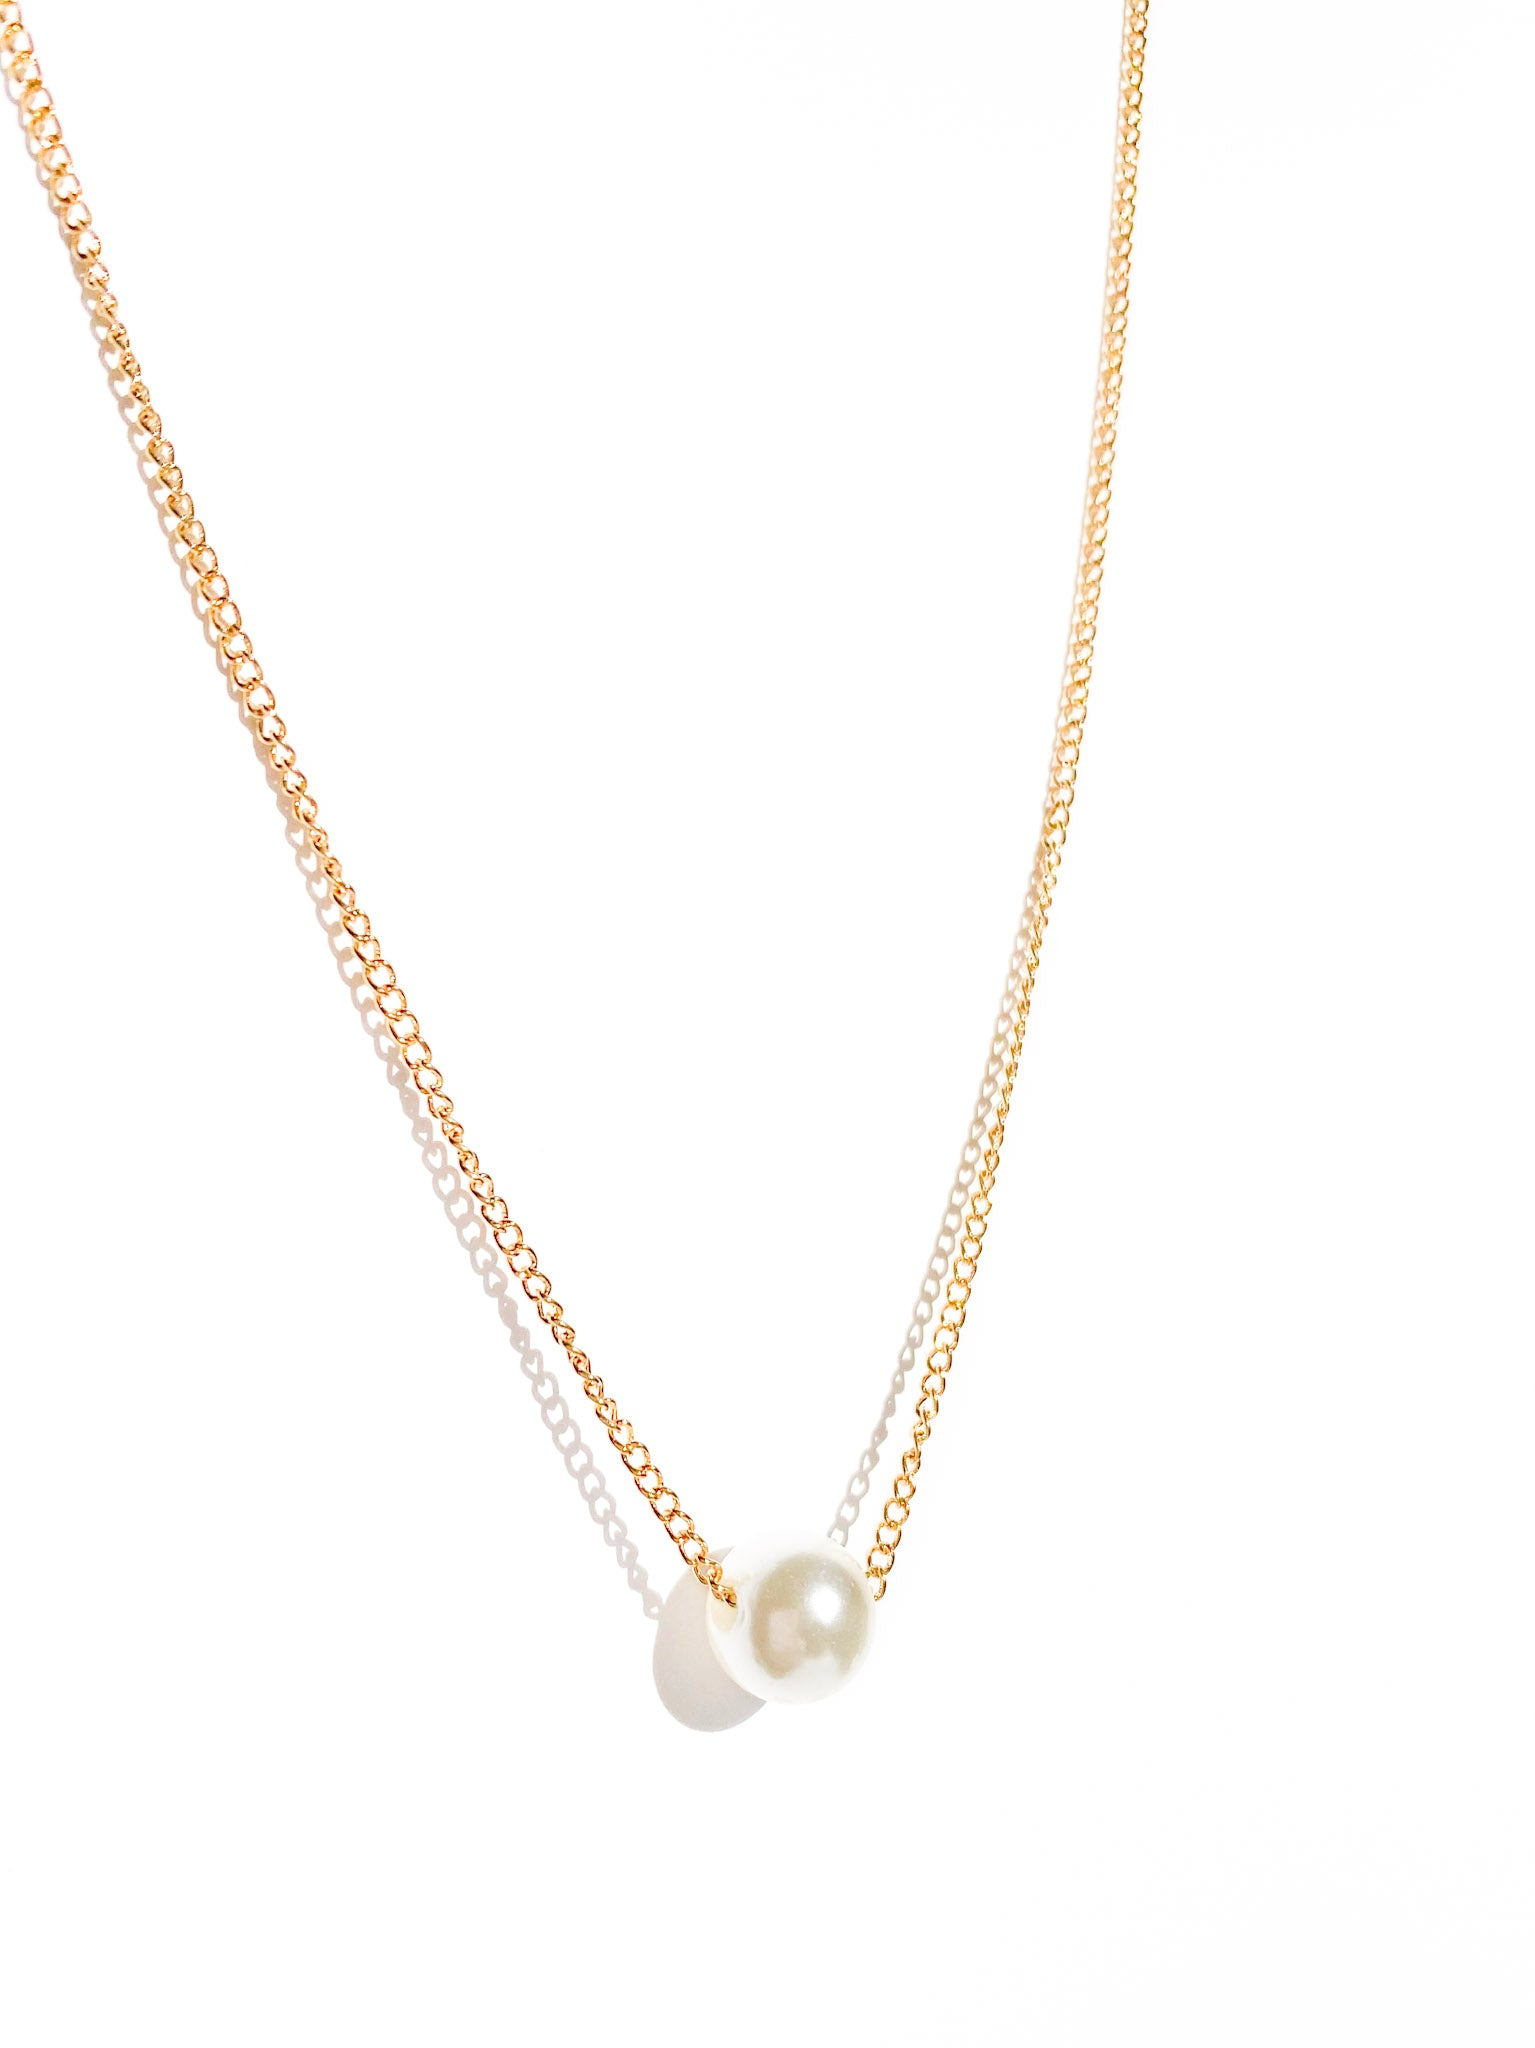 Hannah Vance Pearl Collar Necklace